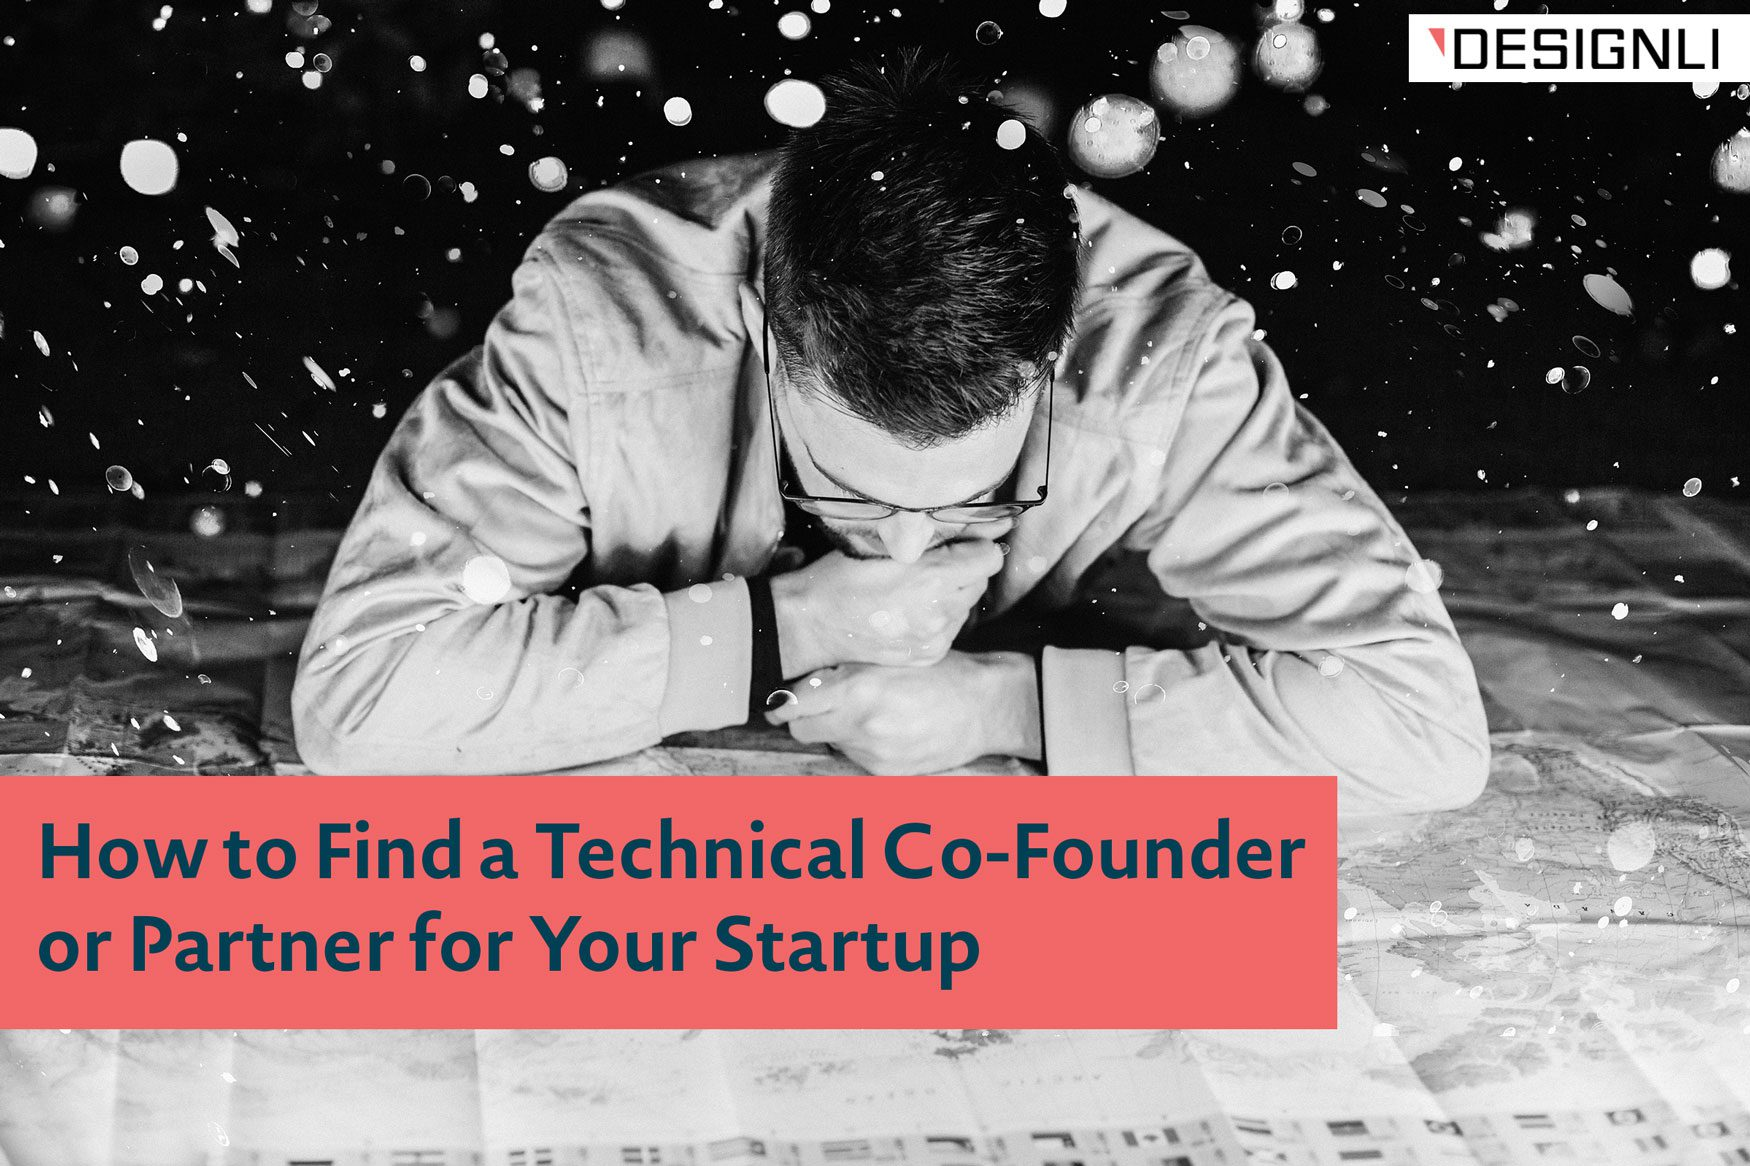 find a technical co-founder or partner